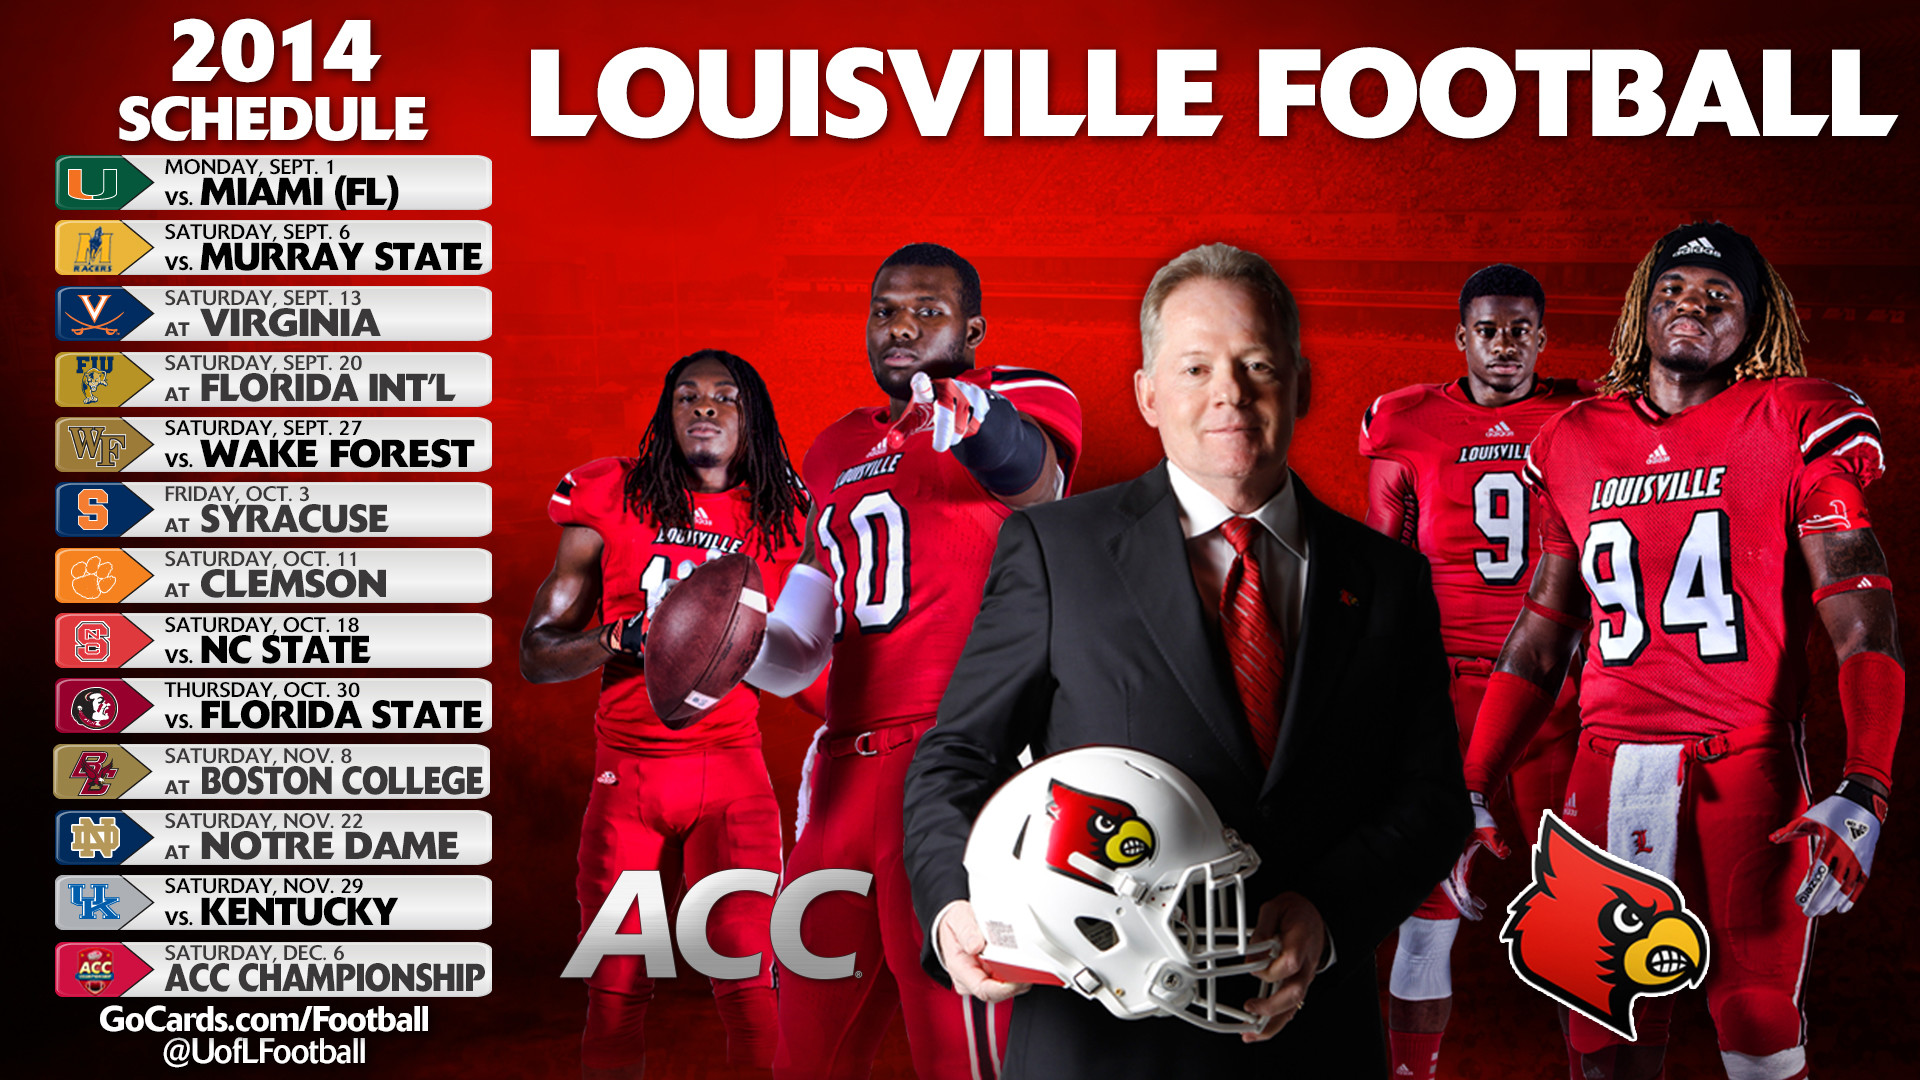 1920x1080 uofl football logo wallpaper - photo #5